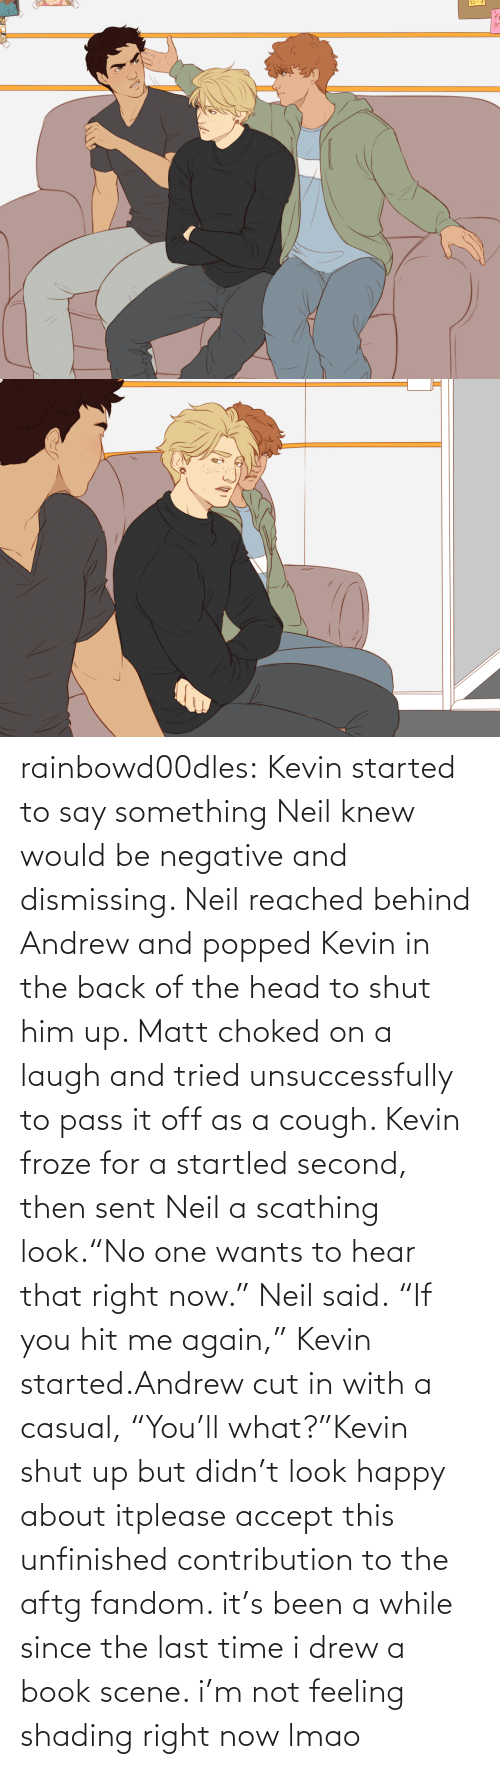 "andrew: rainbowd00dles:  Kevin started to say something Neil knew would be negative and dismissing. Neil reached behind Andrew and popped Kevin in the back of the head to shut him up. Matt choked on a laugh and tried unsuccessfully to pass it off as a cough. Kevin froze for a startled second, then sent Neil a scathing look.""No one wants to hear that right now."" Neil said. ""If you hit me again,"" Kevin started.Andrew cut in with a casual, ""You'll what?""Kevin shut up but didn't look happy about itplease accept this unfinished contribution to the aftg fandom. it's been a while since the last time i drew a book scene. i'm not feeling shading right now lmao"